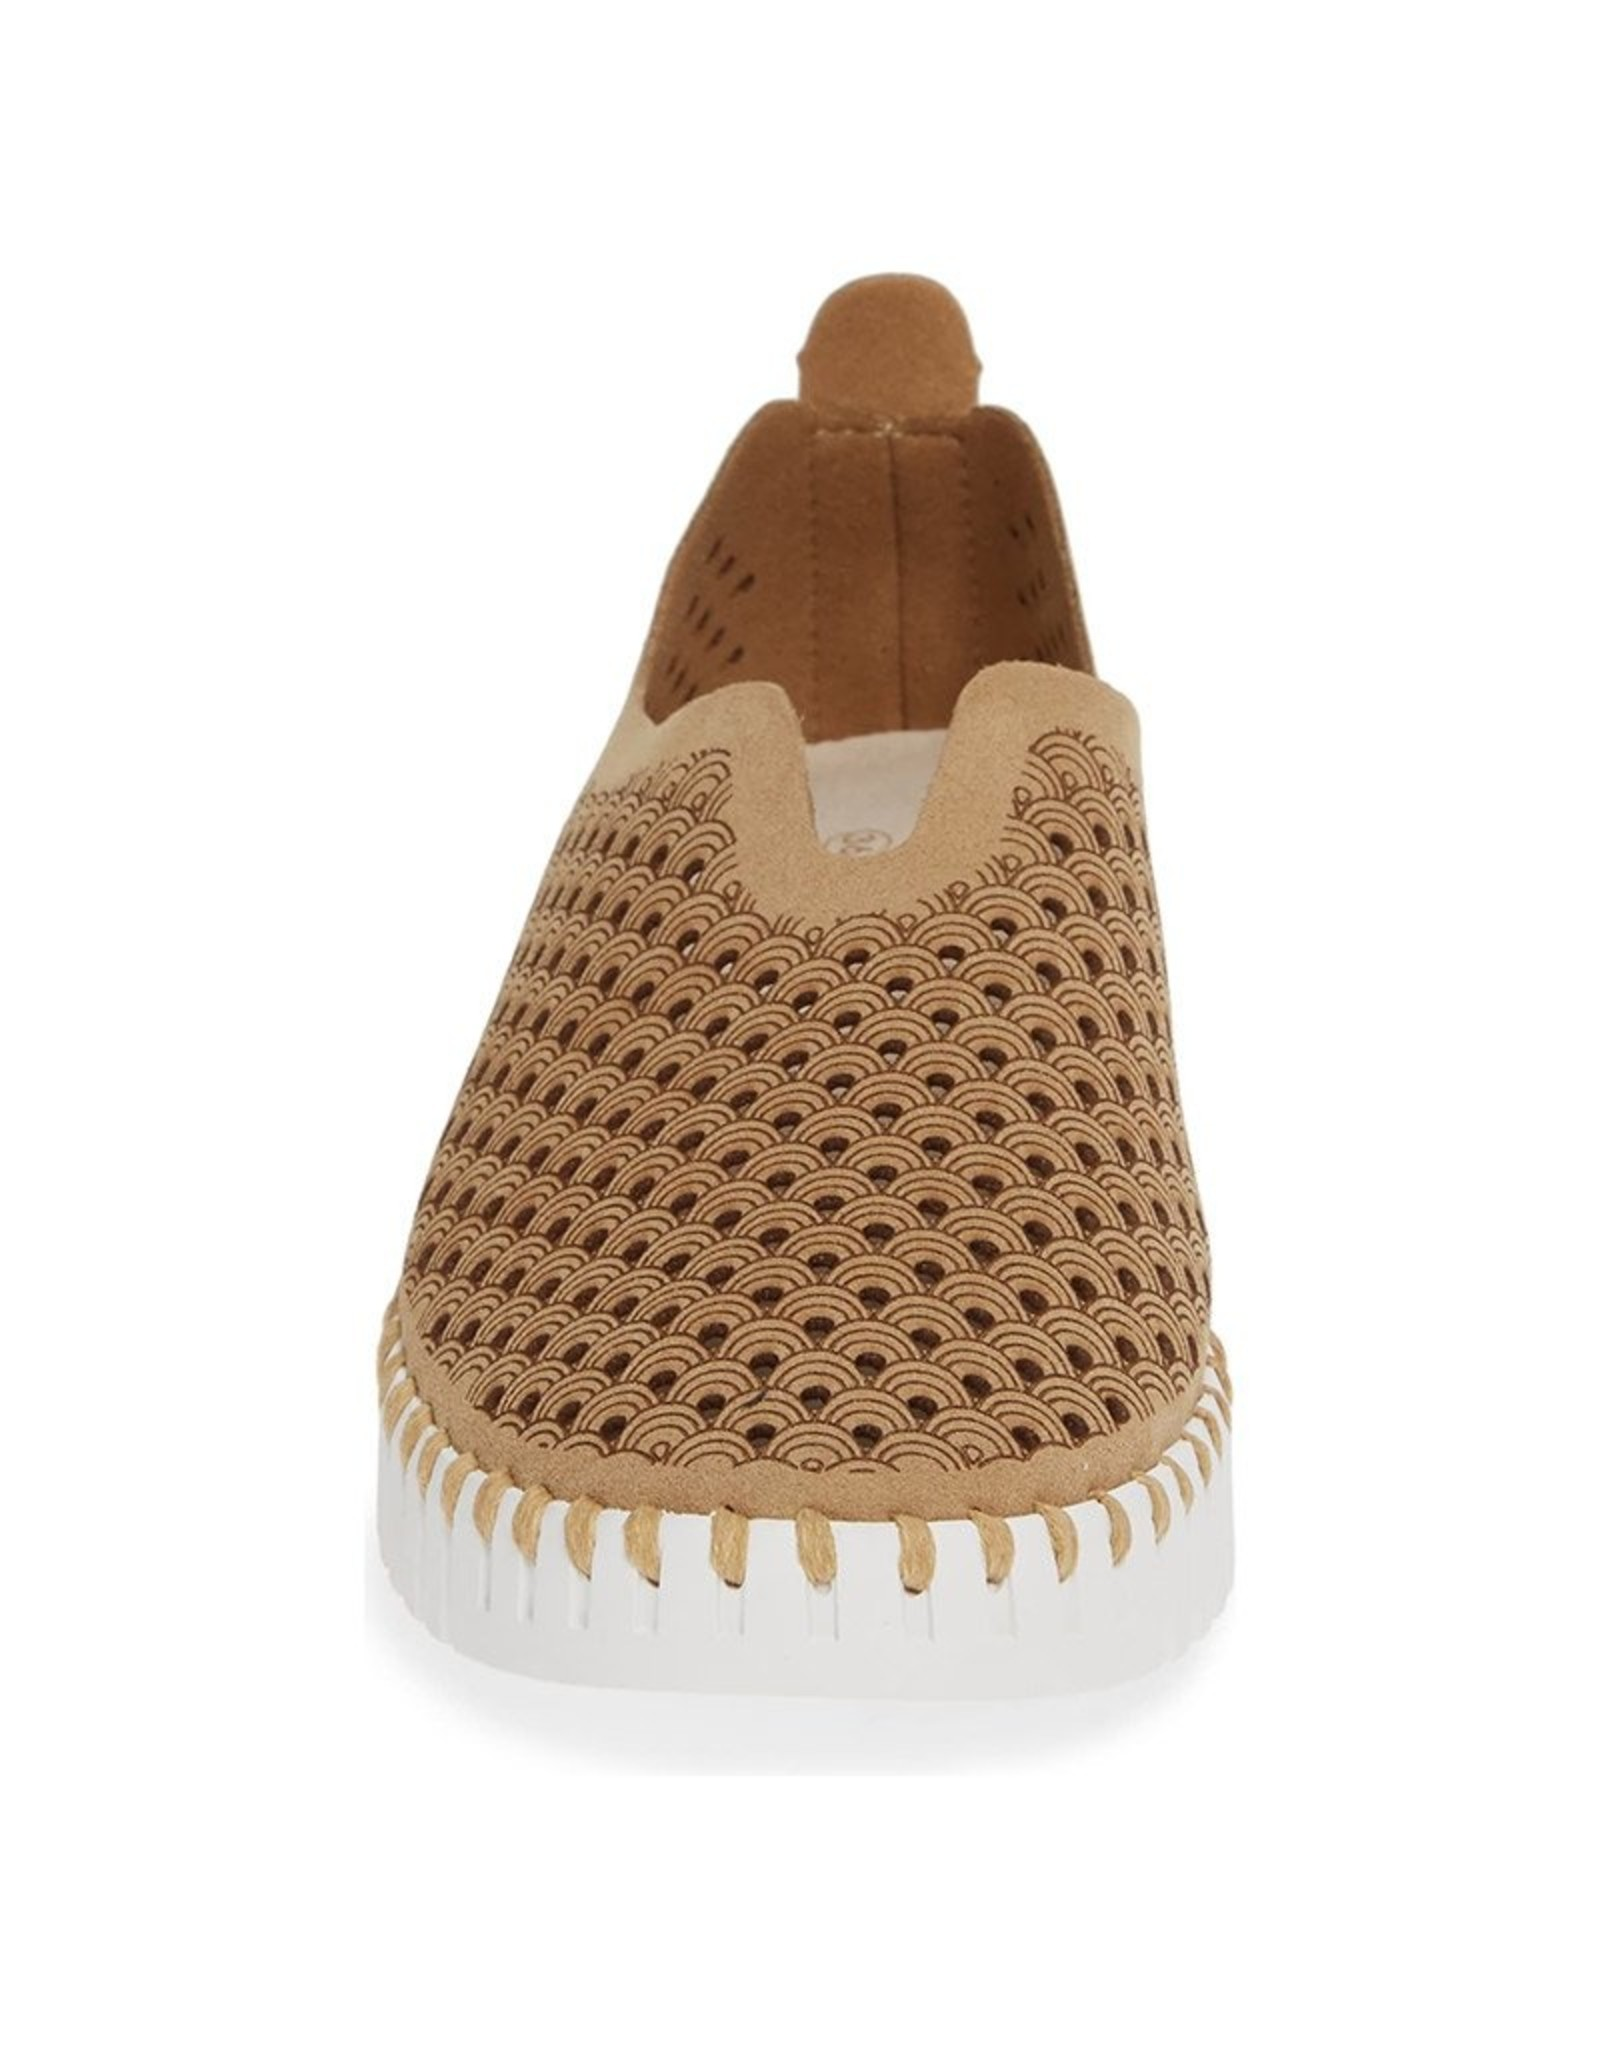 Ilse Jacobsen Ilse Jacobsen Tulip Slip on Flats in Latte